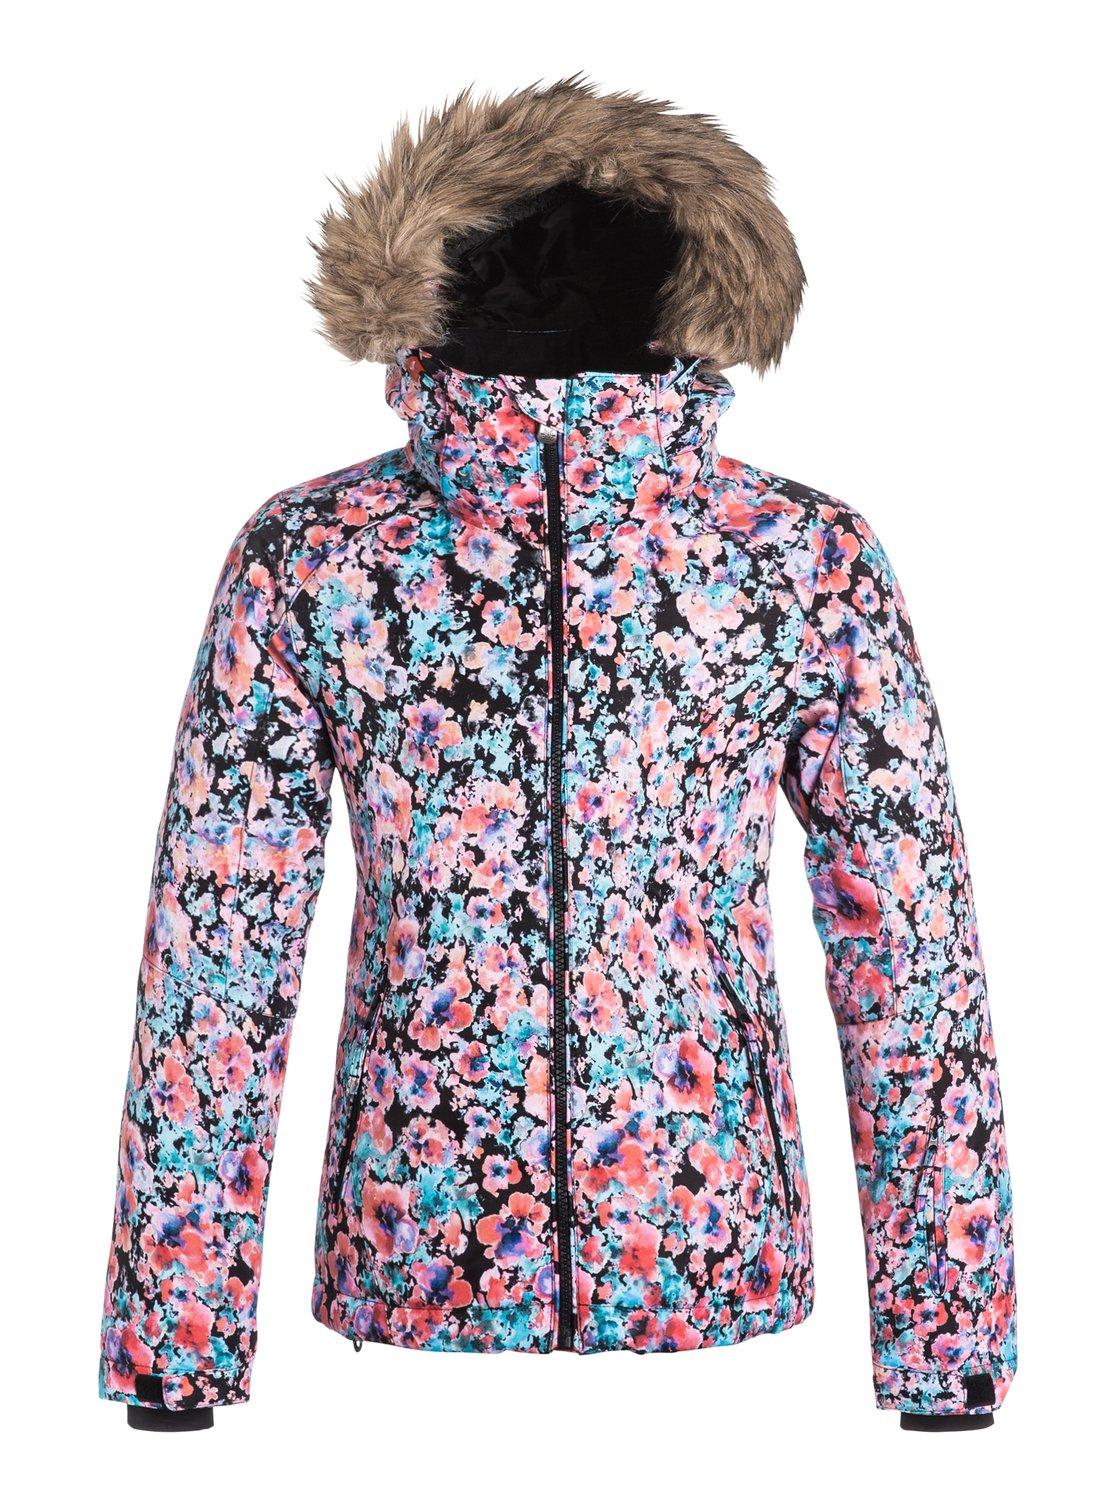 Сноубордическая детская куртка Jet SkiThe Jet Ski snowboard jacket for girls comes complete with a sporty yet feminine slim fit and cosy removable fur. The bold fashionable prints have been woven with 10K ROXY DryFlight® technology waterproofing for reliable waterproof and breathable protection in a wide range of winter conditions. Other features include Warmflight® insulation level 3 to keep you cosy on the coldest winter days and breathable taffeta lining with soft tricot panels.<br>